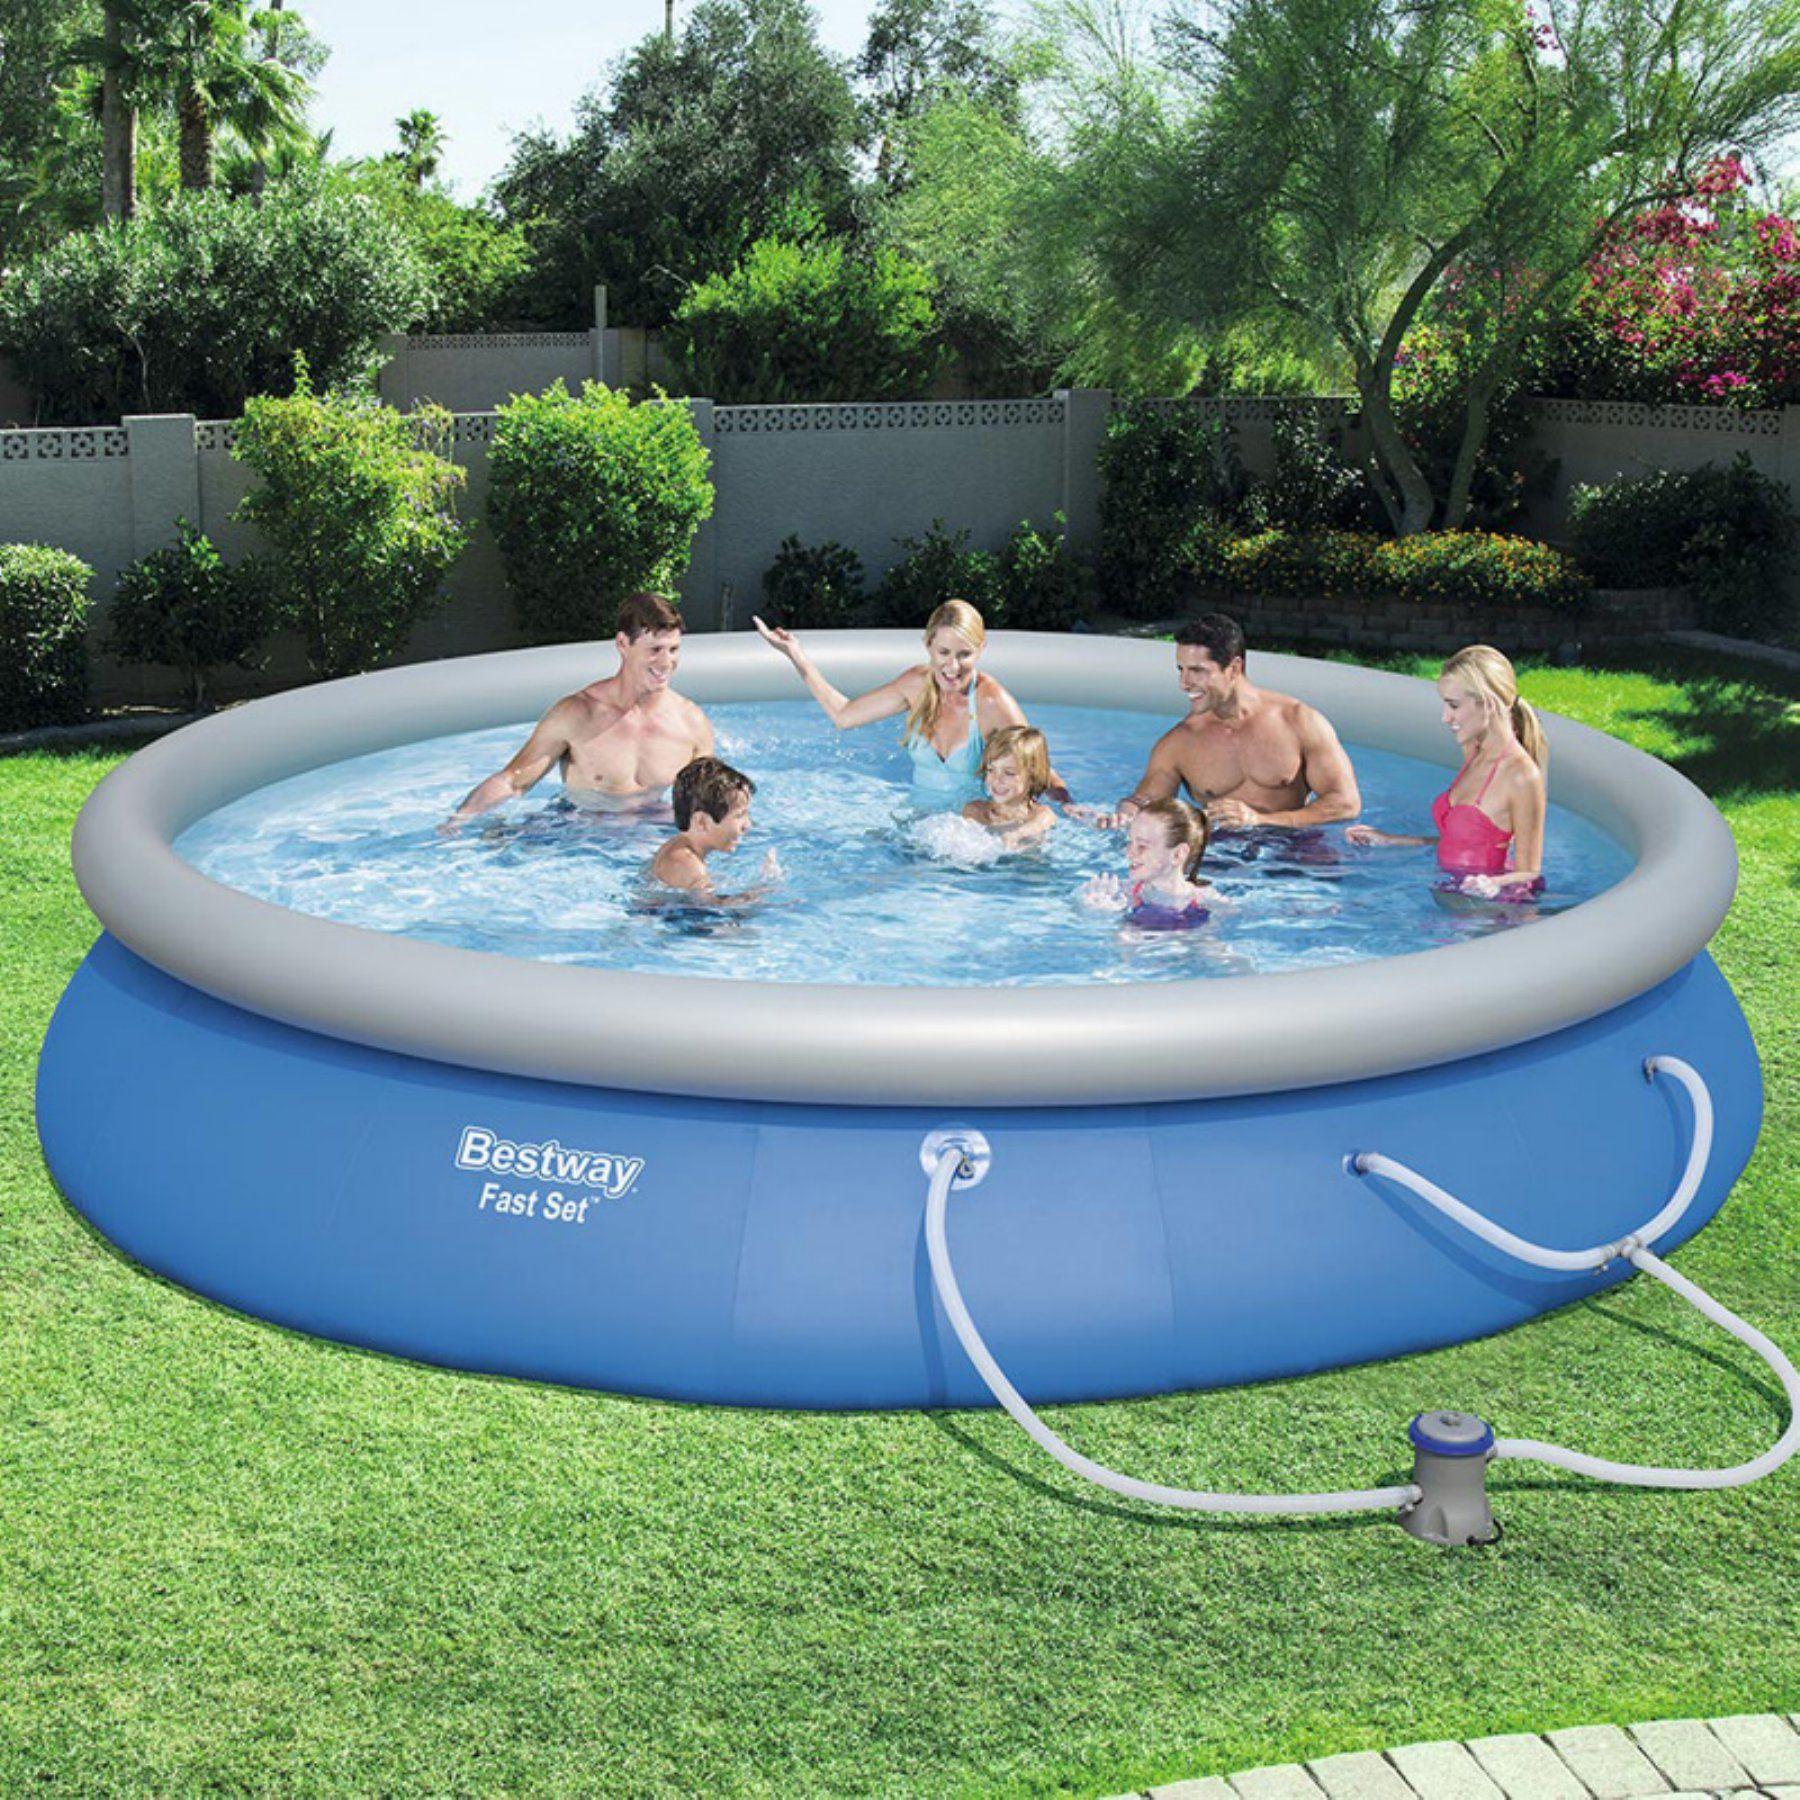 Bestway Fast Set 350 Goh Pump Swimming Pool  57315E